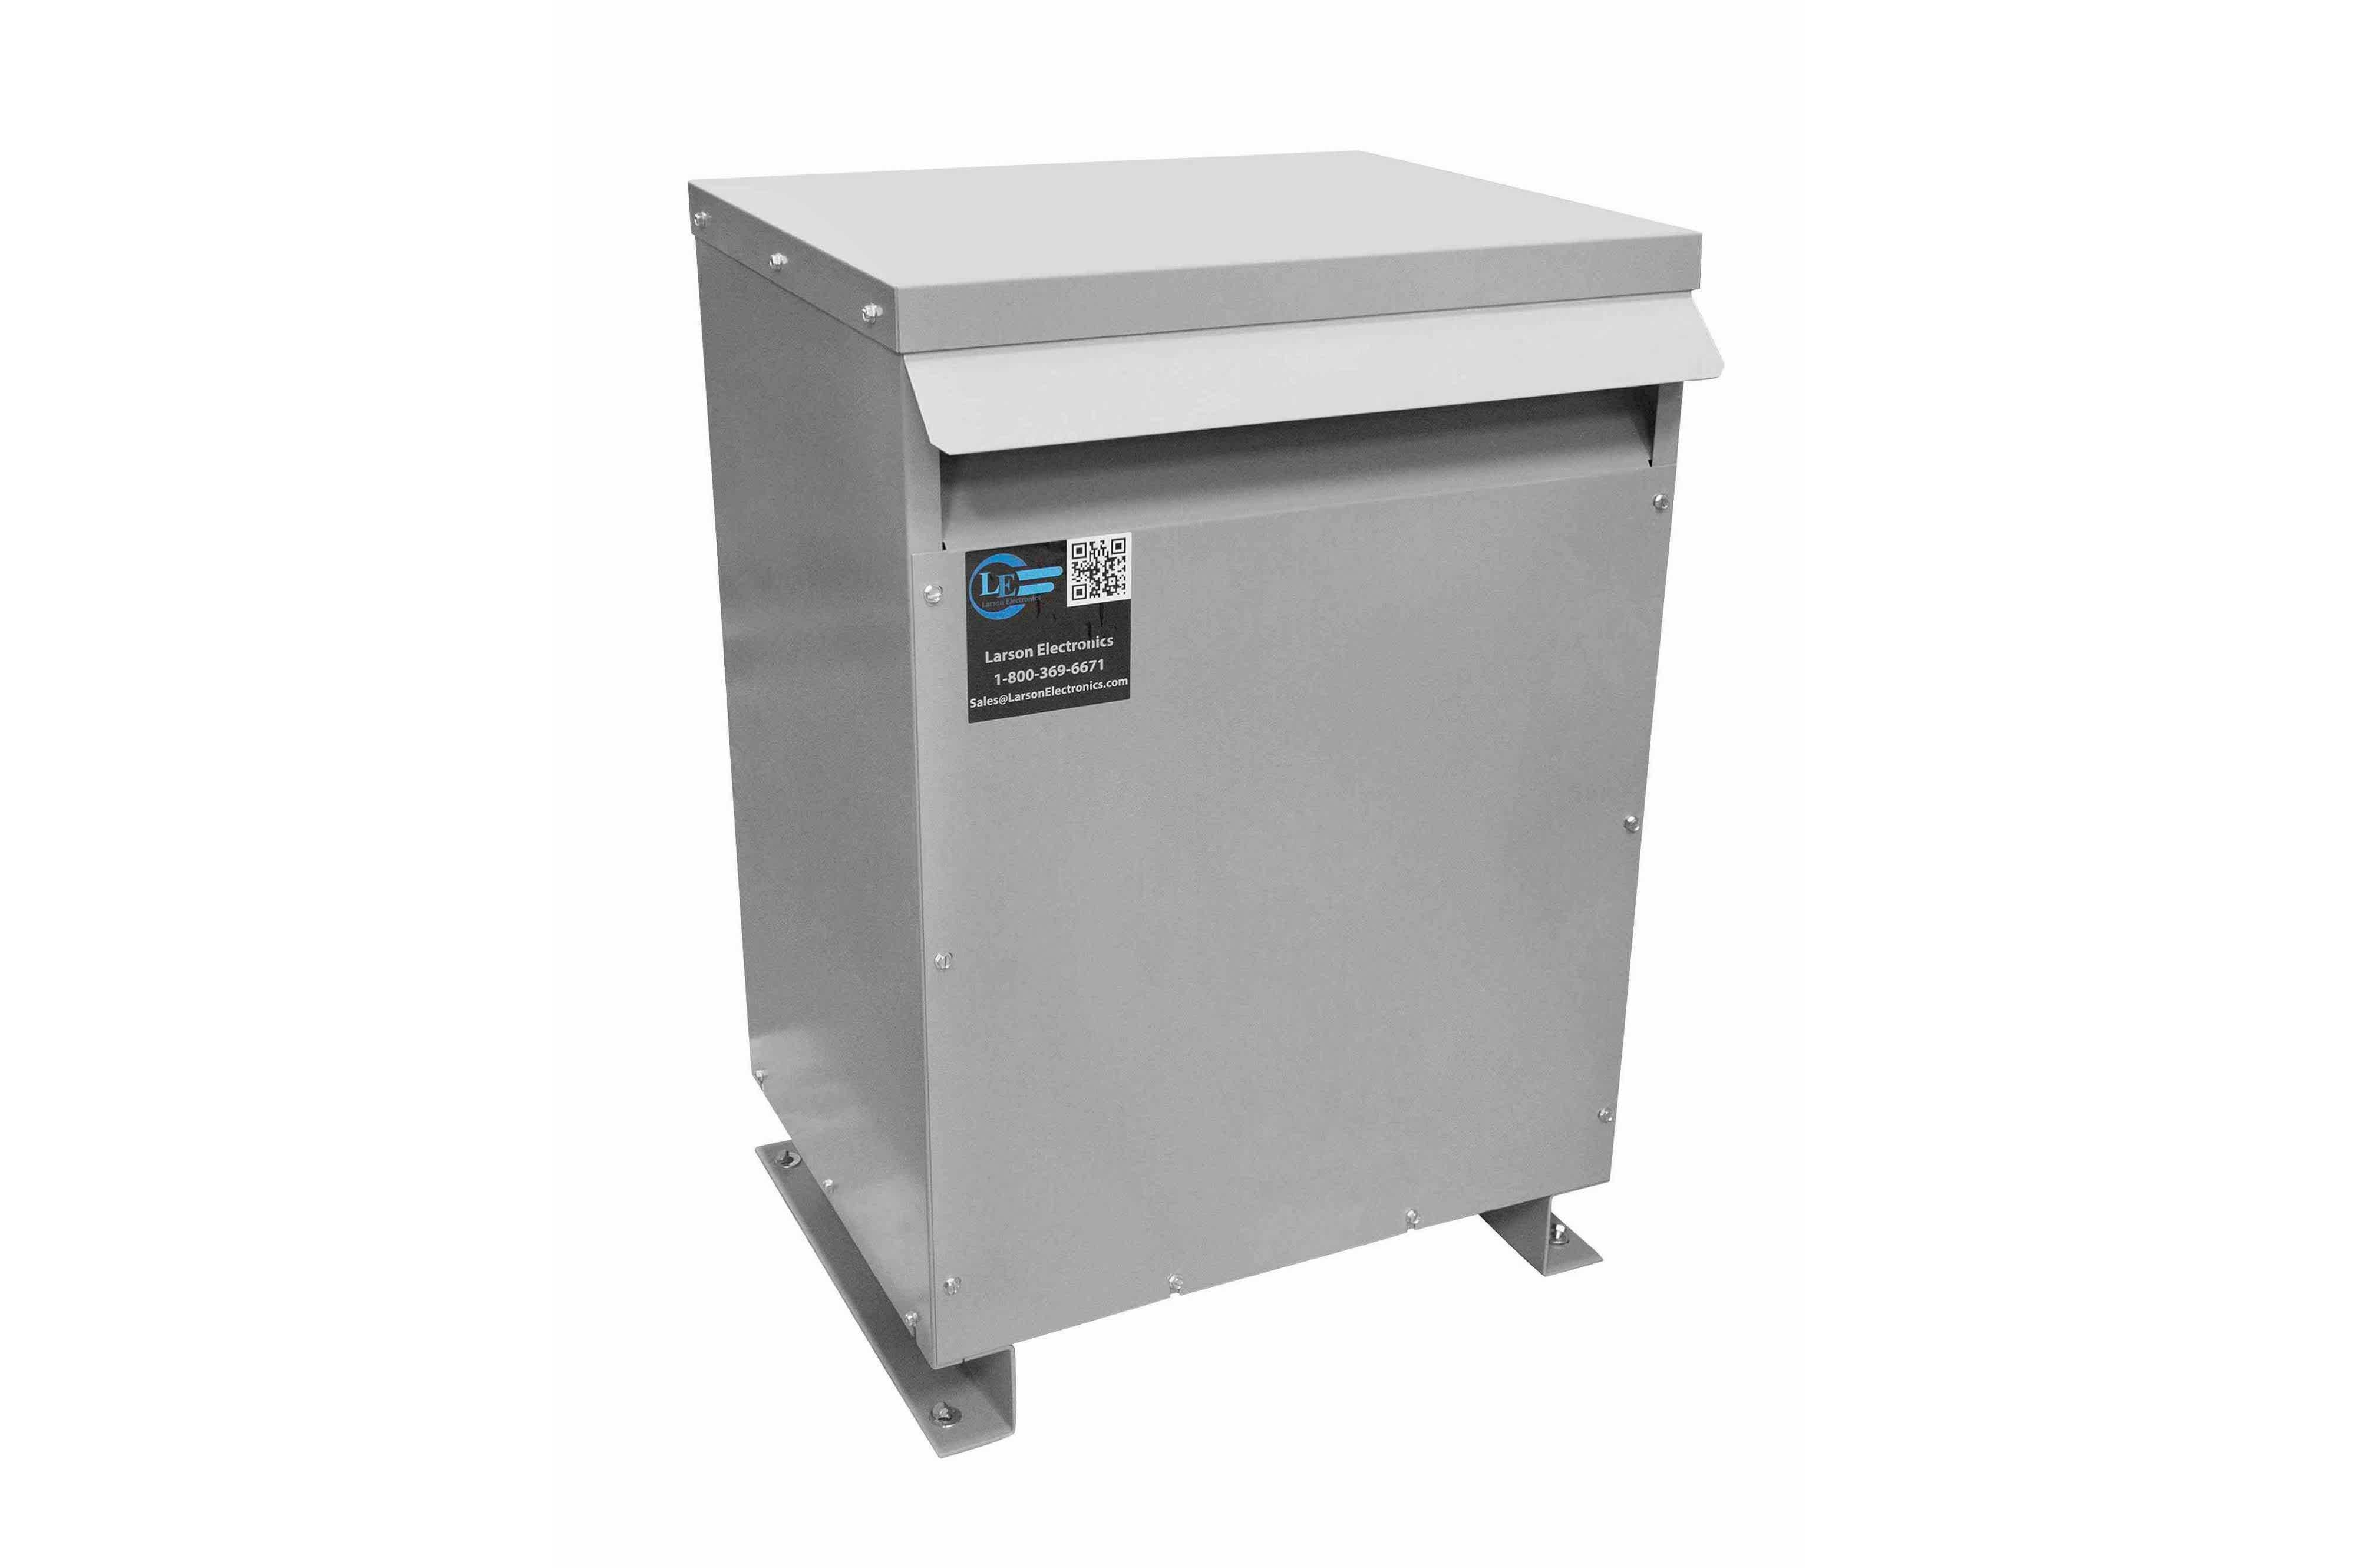 9 kVA 3PH Isolation Transformer, 460V Wye Primary, 380V Delta Secondary, N3R, Ventilated, 60 Hz